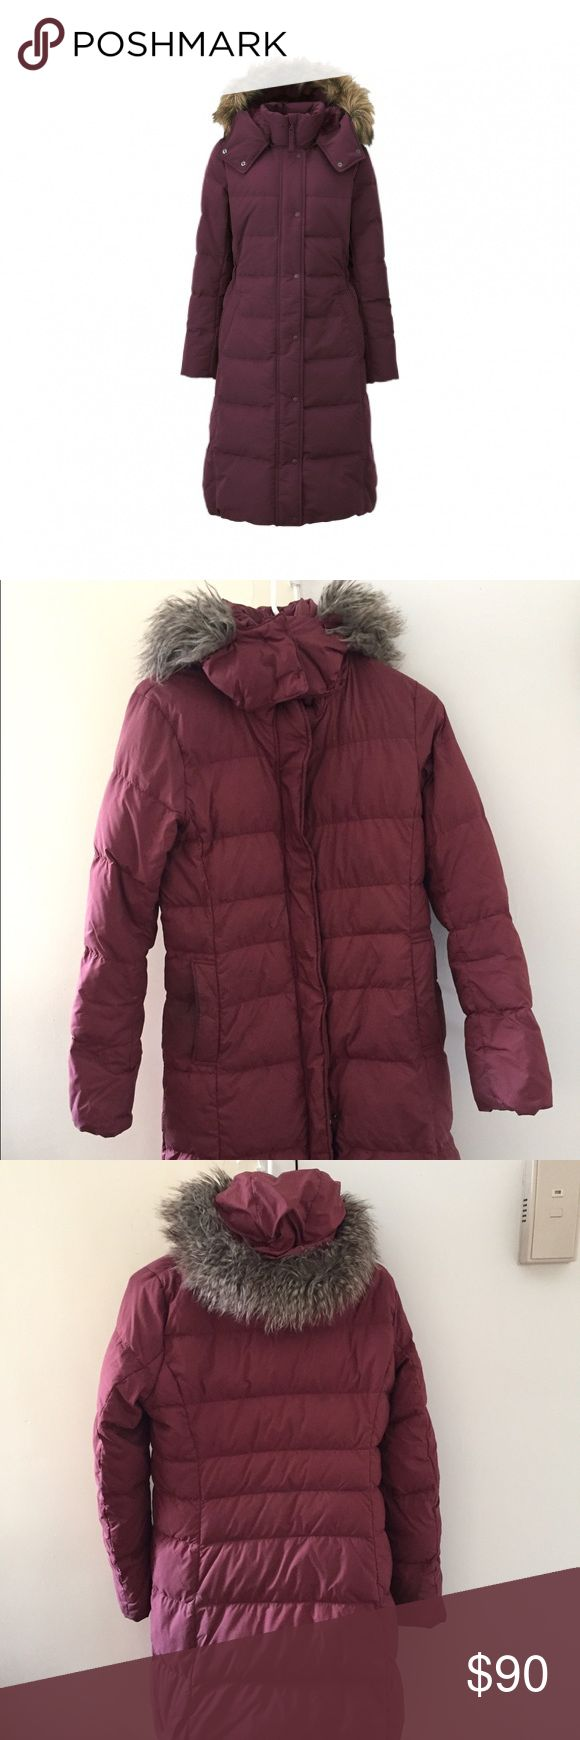 Uniqlo Ultra Warm Down coat, Maroon Down coat with fleece-lined pockets and faux-fur removable hood. Great condition - full disclosure: could use a cleaning. The cost of cleaning is deducted from the overall price. Uniqlo Jackets & Coats Puffers